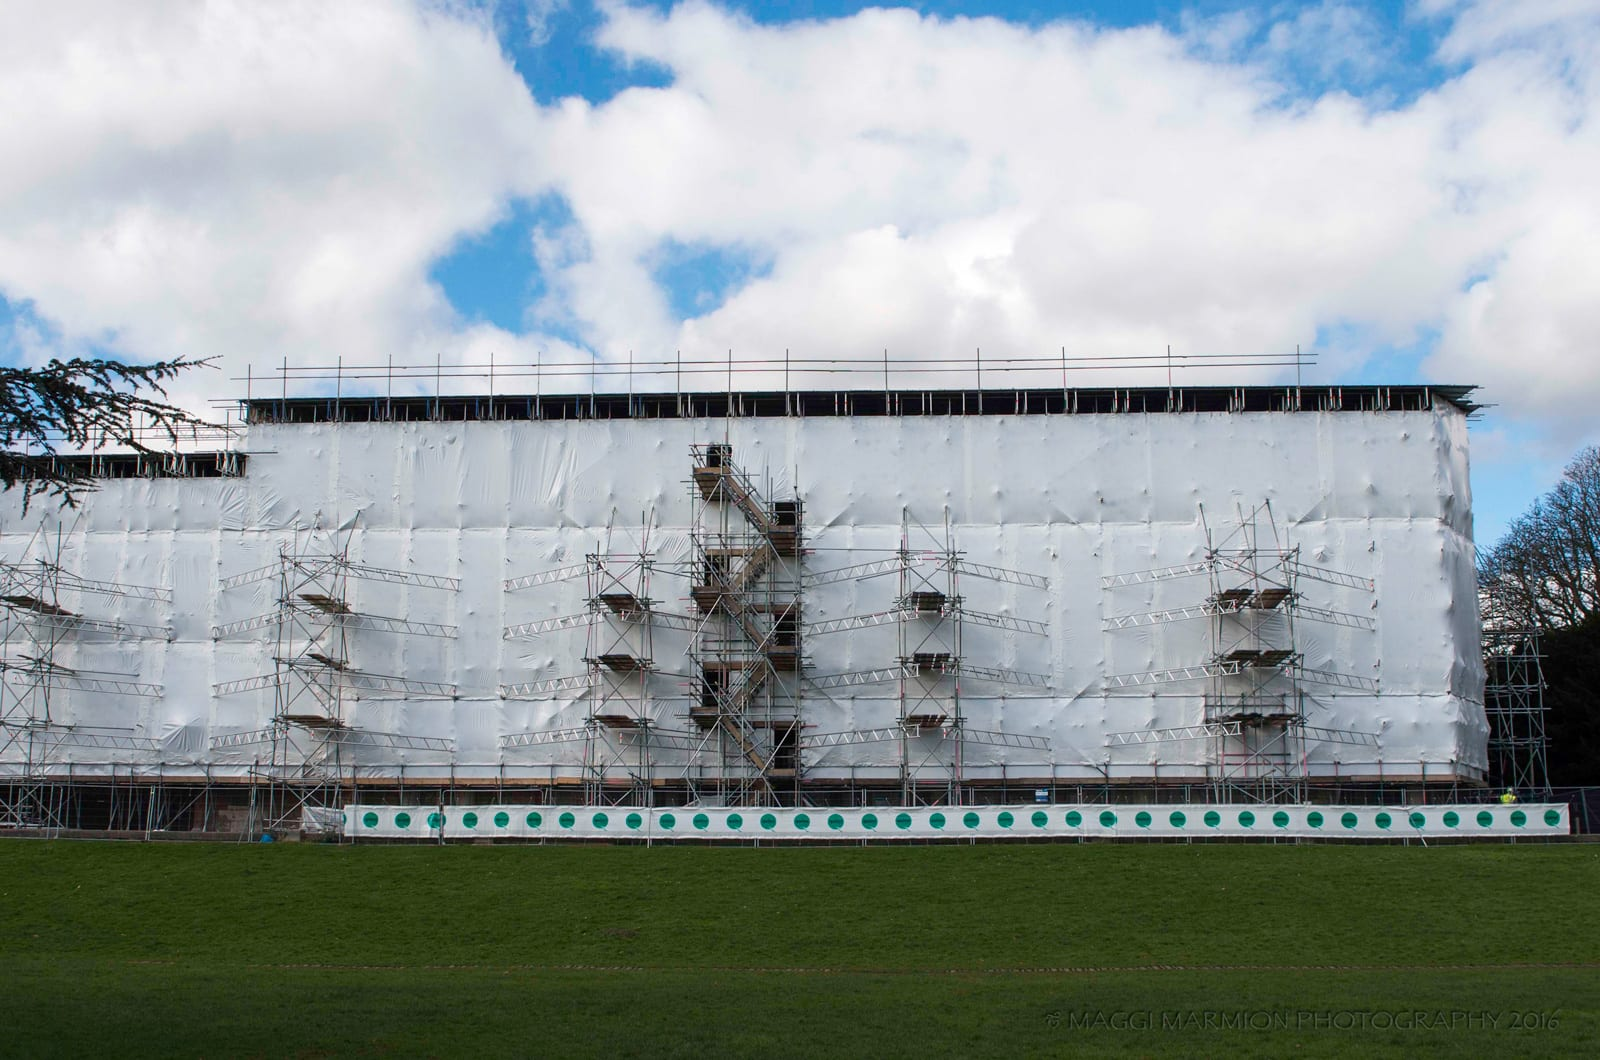 Gunnersbury-House-Tufcoat-Shrink-wrap-Heritage-Project